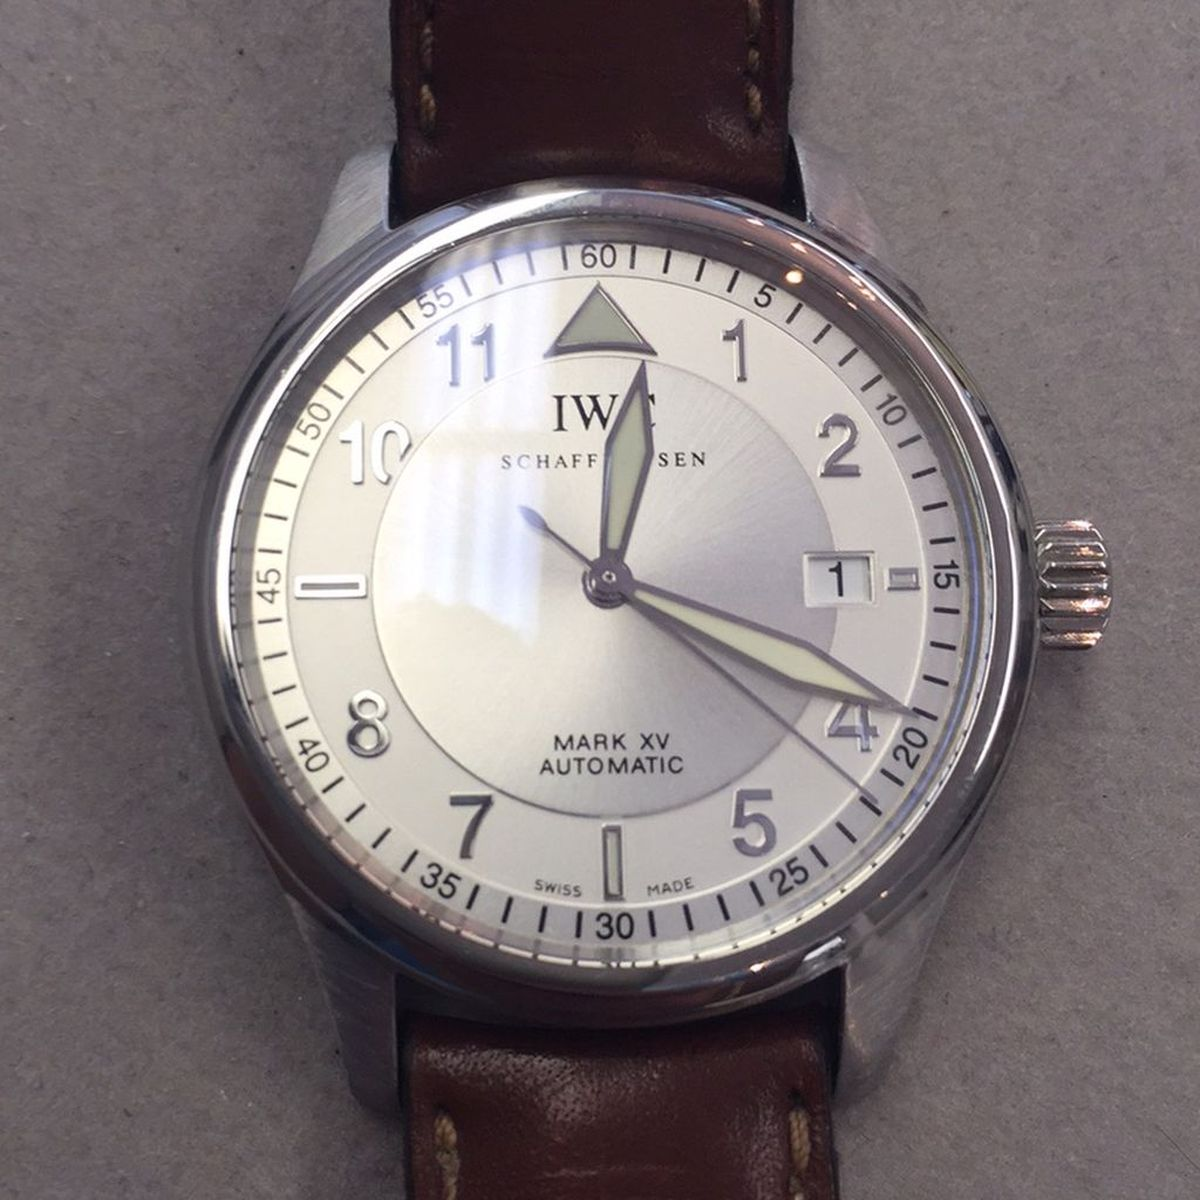 Expert IWC Repair Done Locally